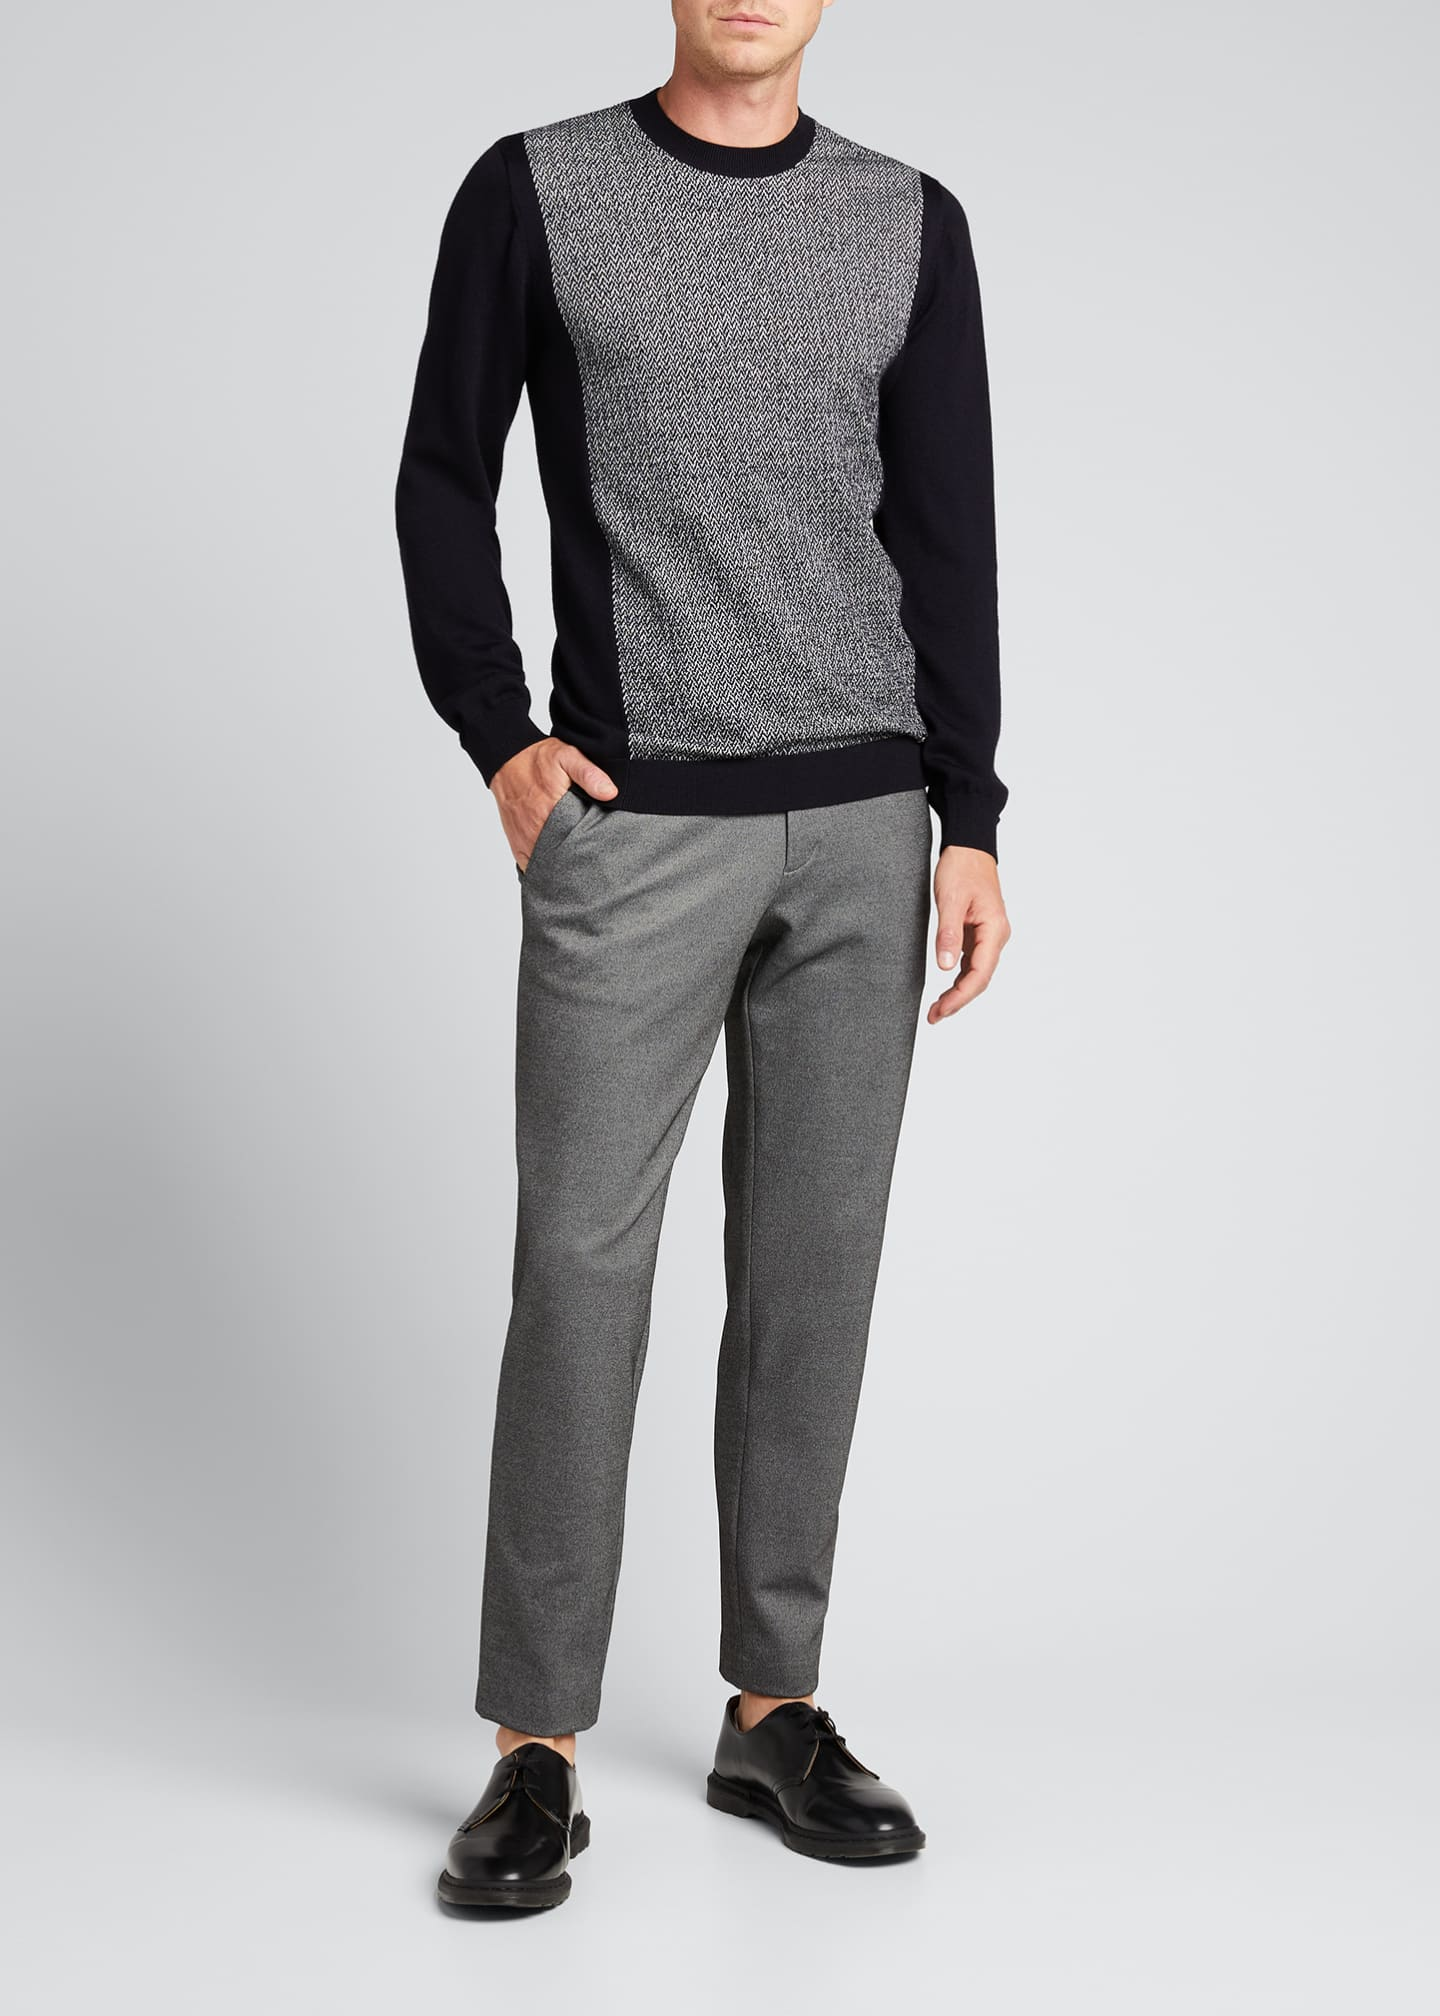 Image 1 of 4: Men's Chevron/Solid Wool Sweater